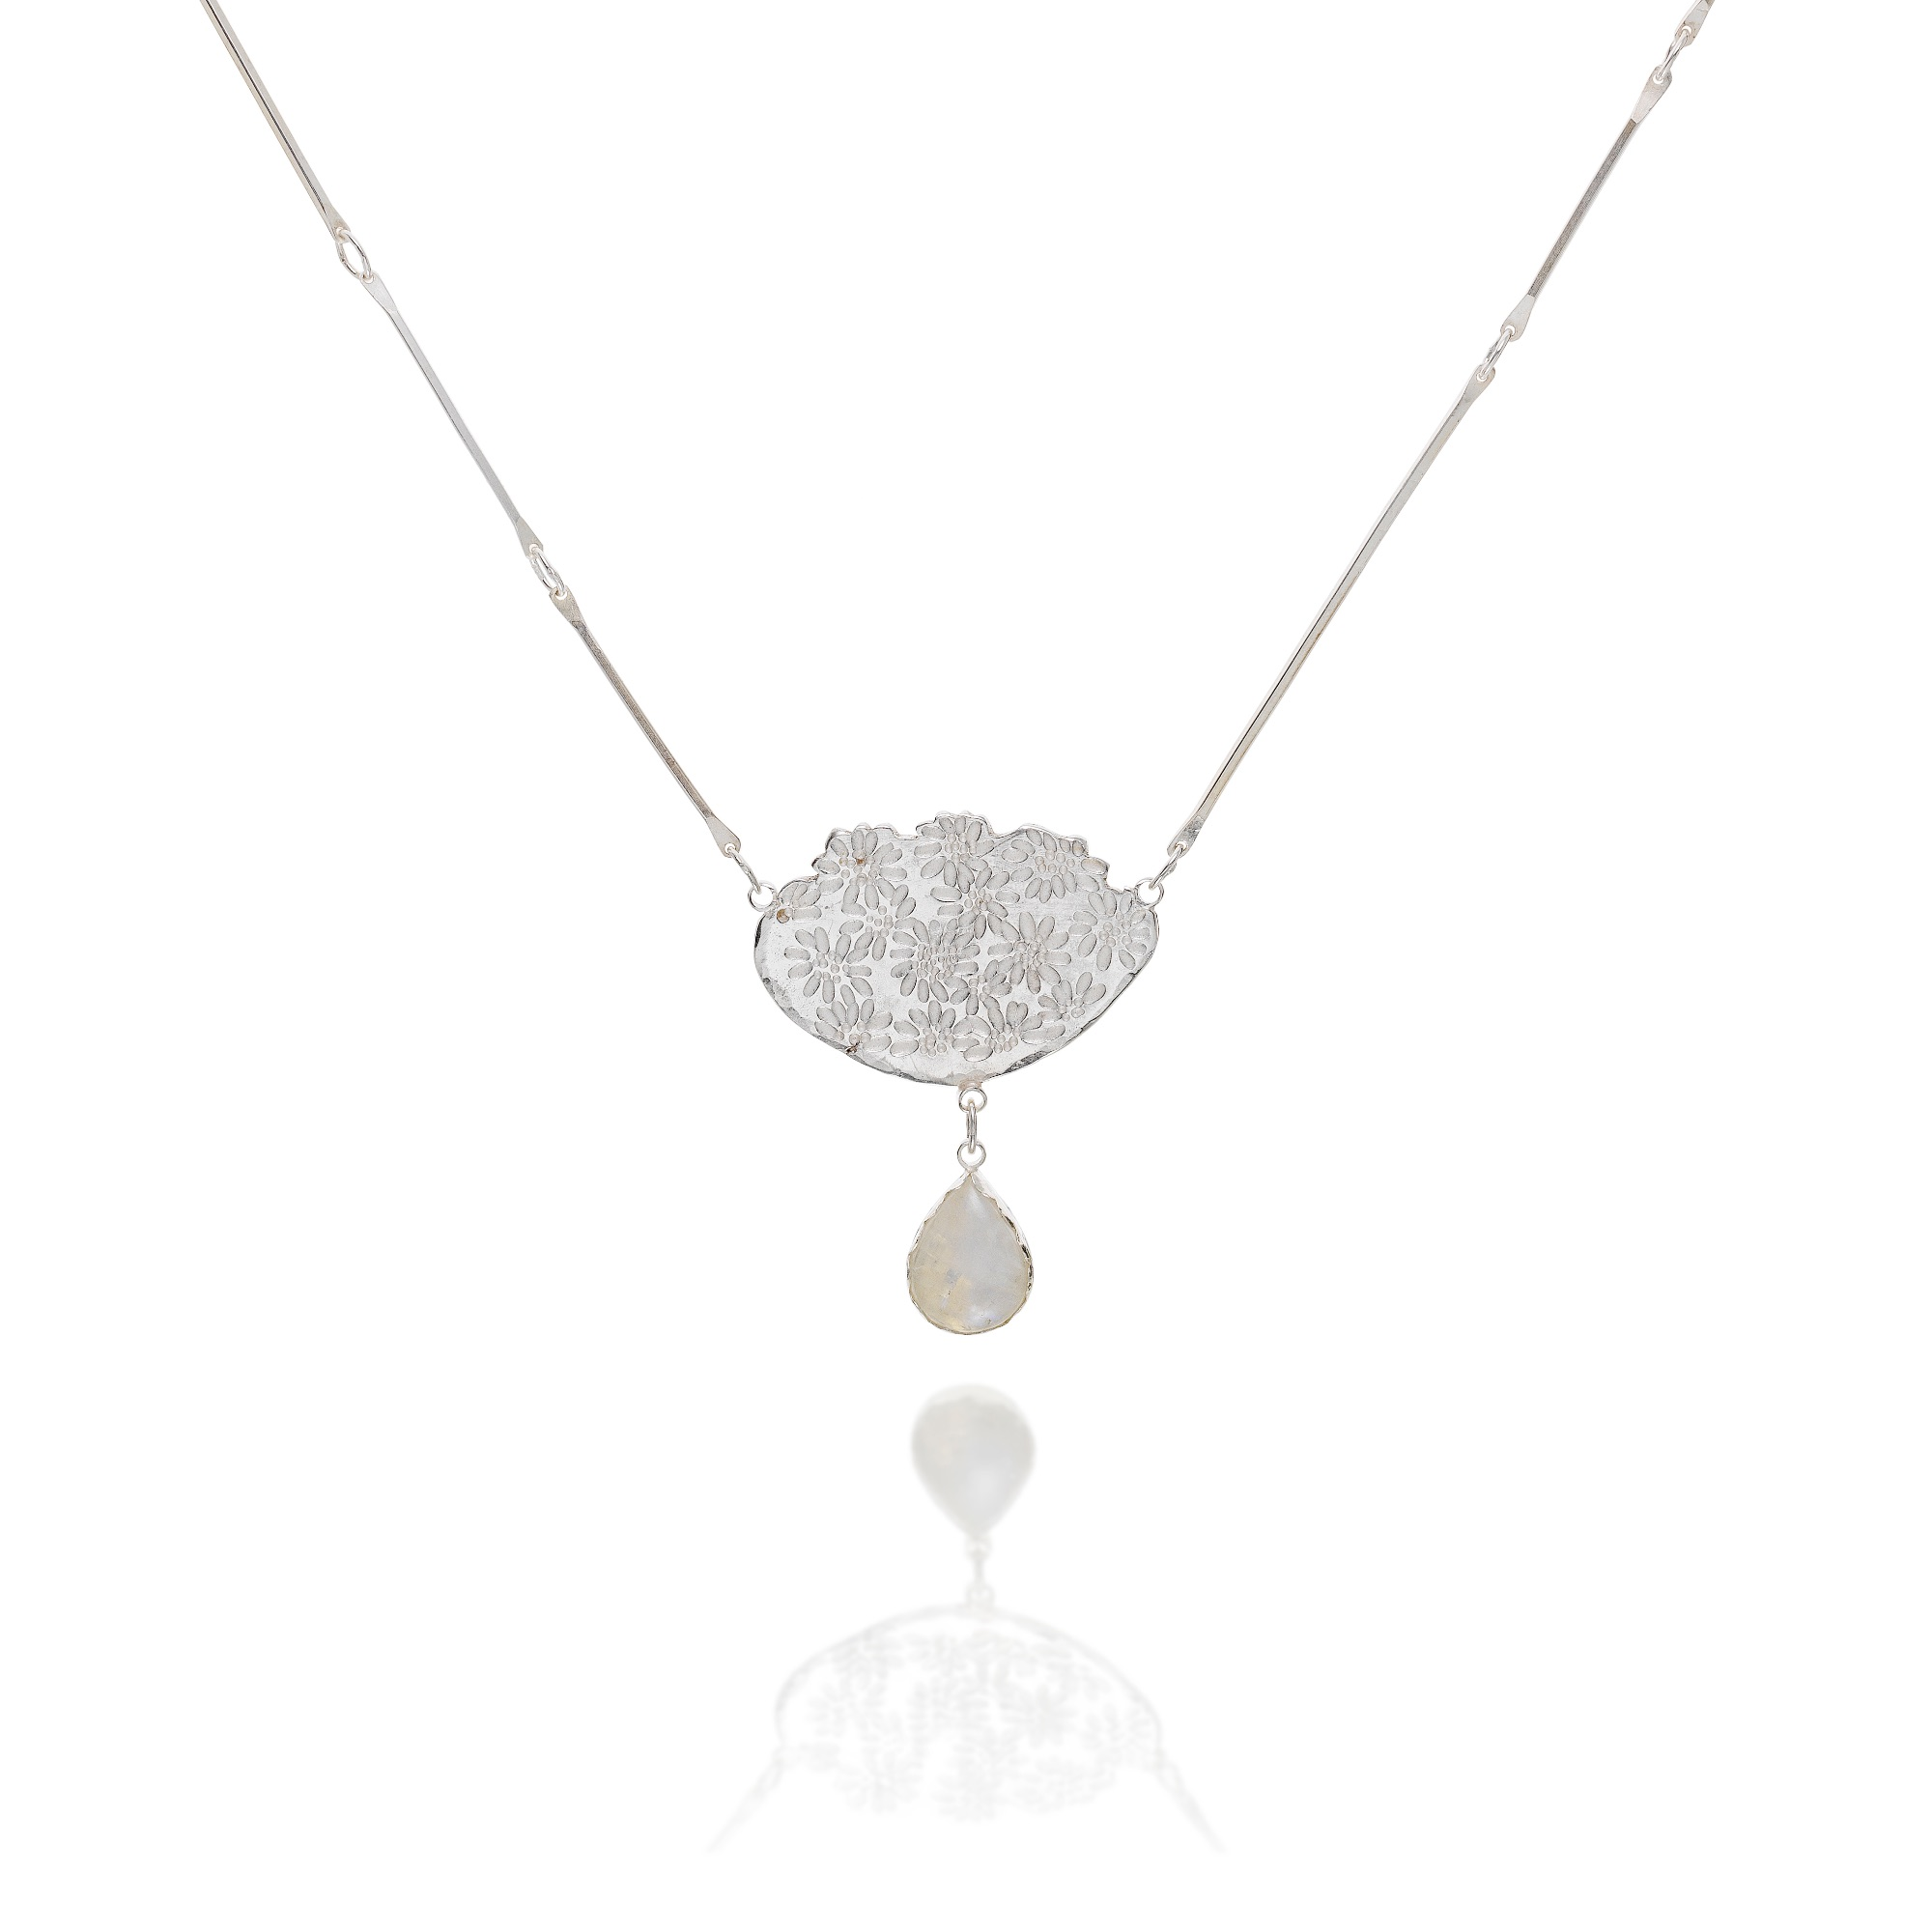 cathy-newell-price-Daisy-Necklace-Moonstone